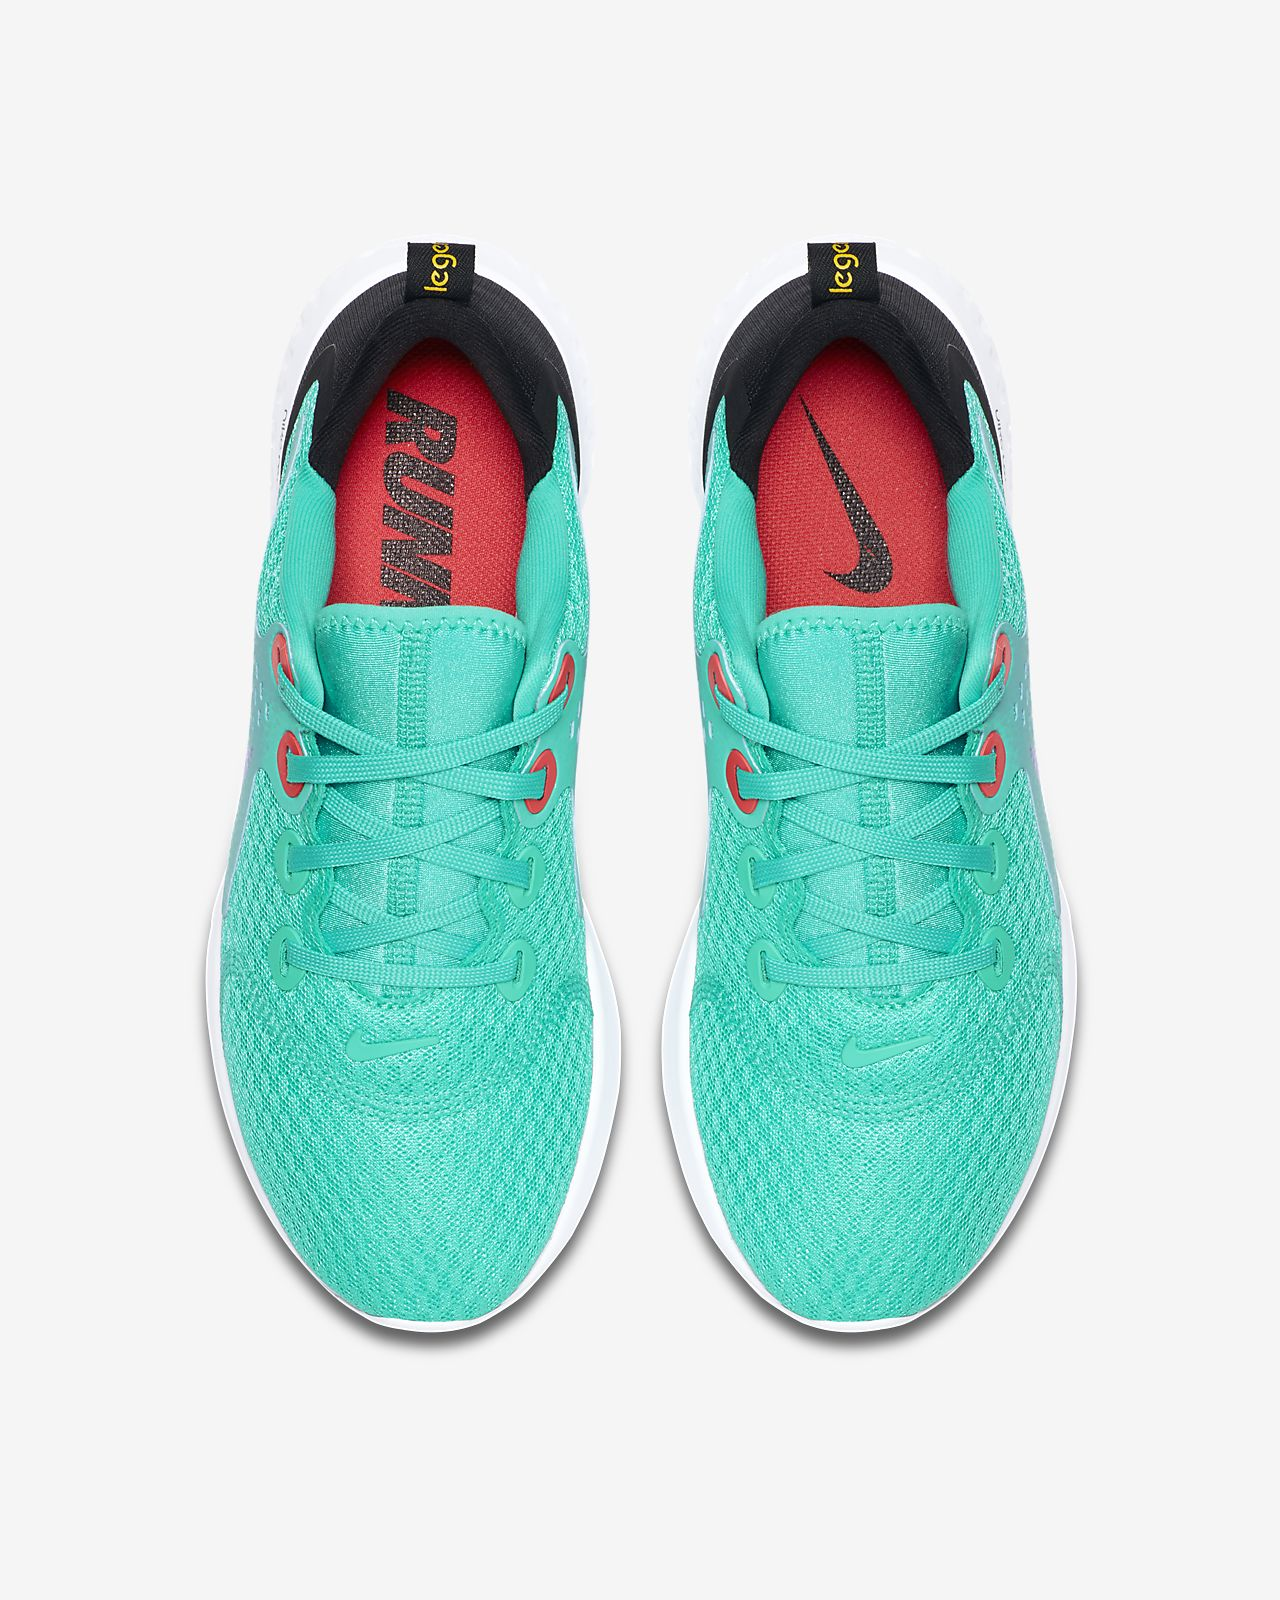 RED AND WHITE IN BLACK NEW MEN/'S NIKE LEGEND REACT RUNNING SHOES $100 RETAIL!